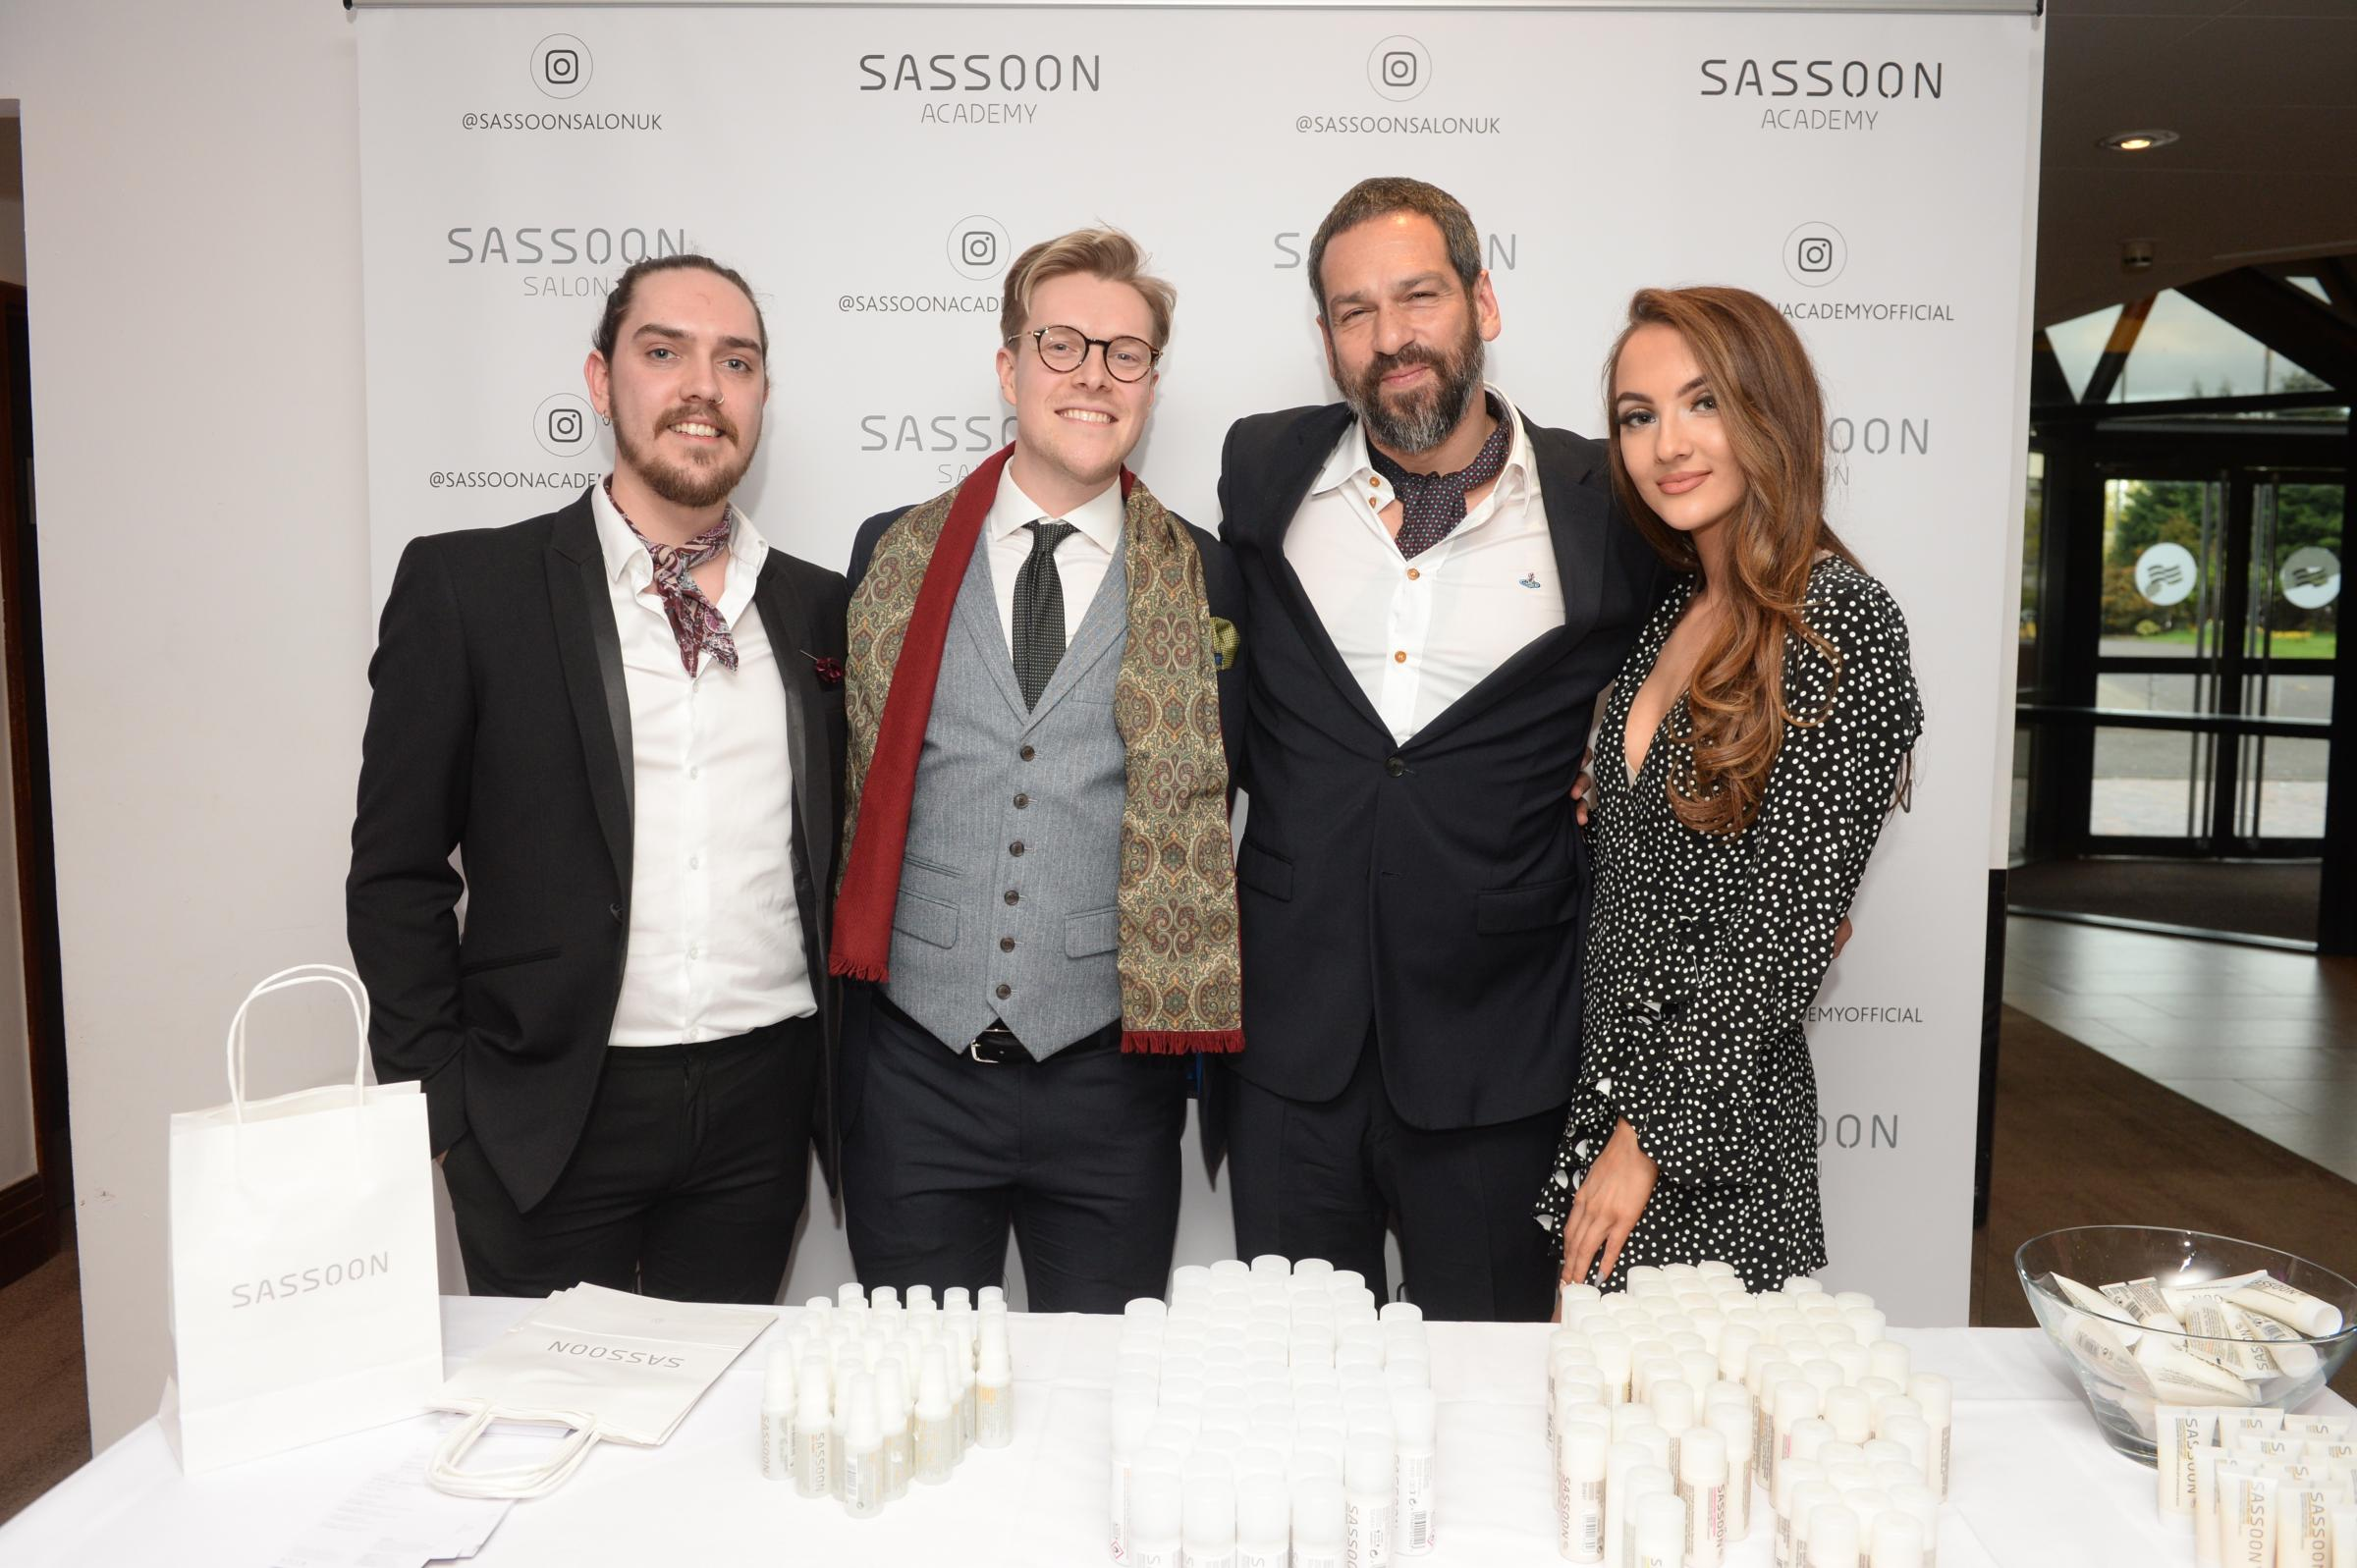 Sharz Din, second from right, of Vidal Sassoon, celebrates winning the Outstanding Contribution of the Year prize at the 2018 Look Awards. He is pictured with Martin Collins, left, Stephen Doran and Katy Craig. Picture: Kirsty Anderson / Herald & Times.